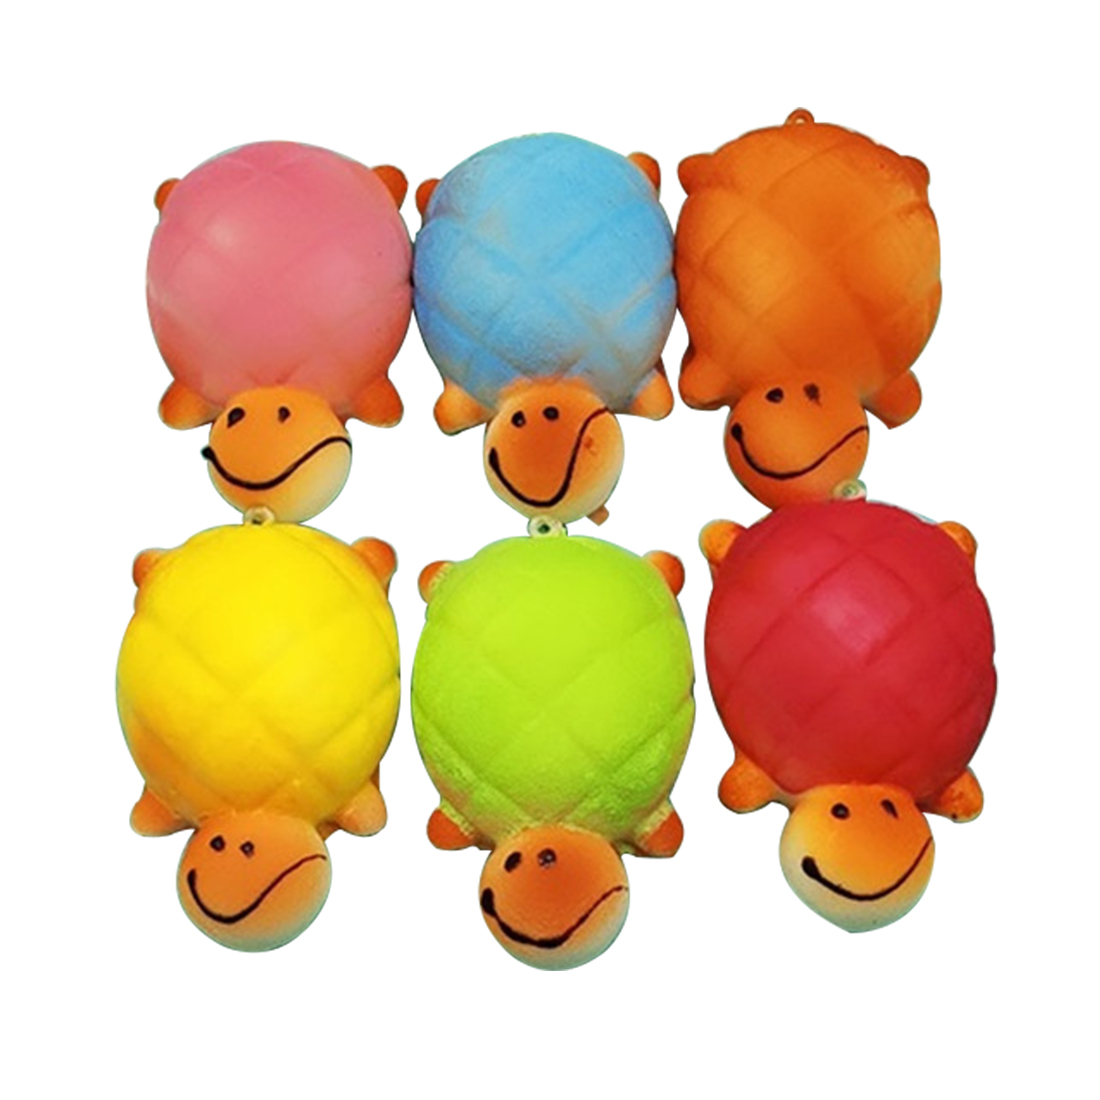 1PCS 10X13CM Random Kawaii Turtle Shape Squishy Toy Cell Phone Chain